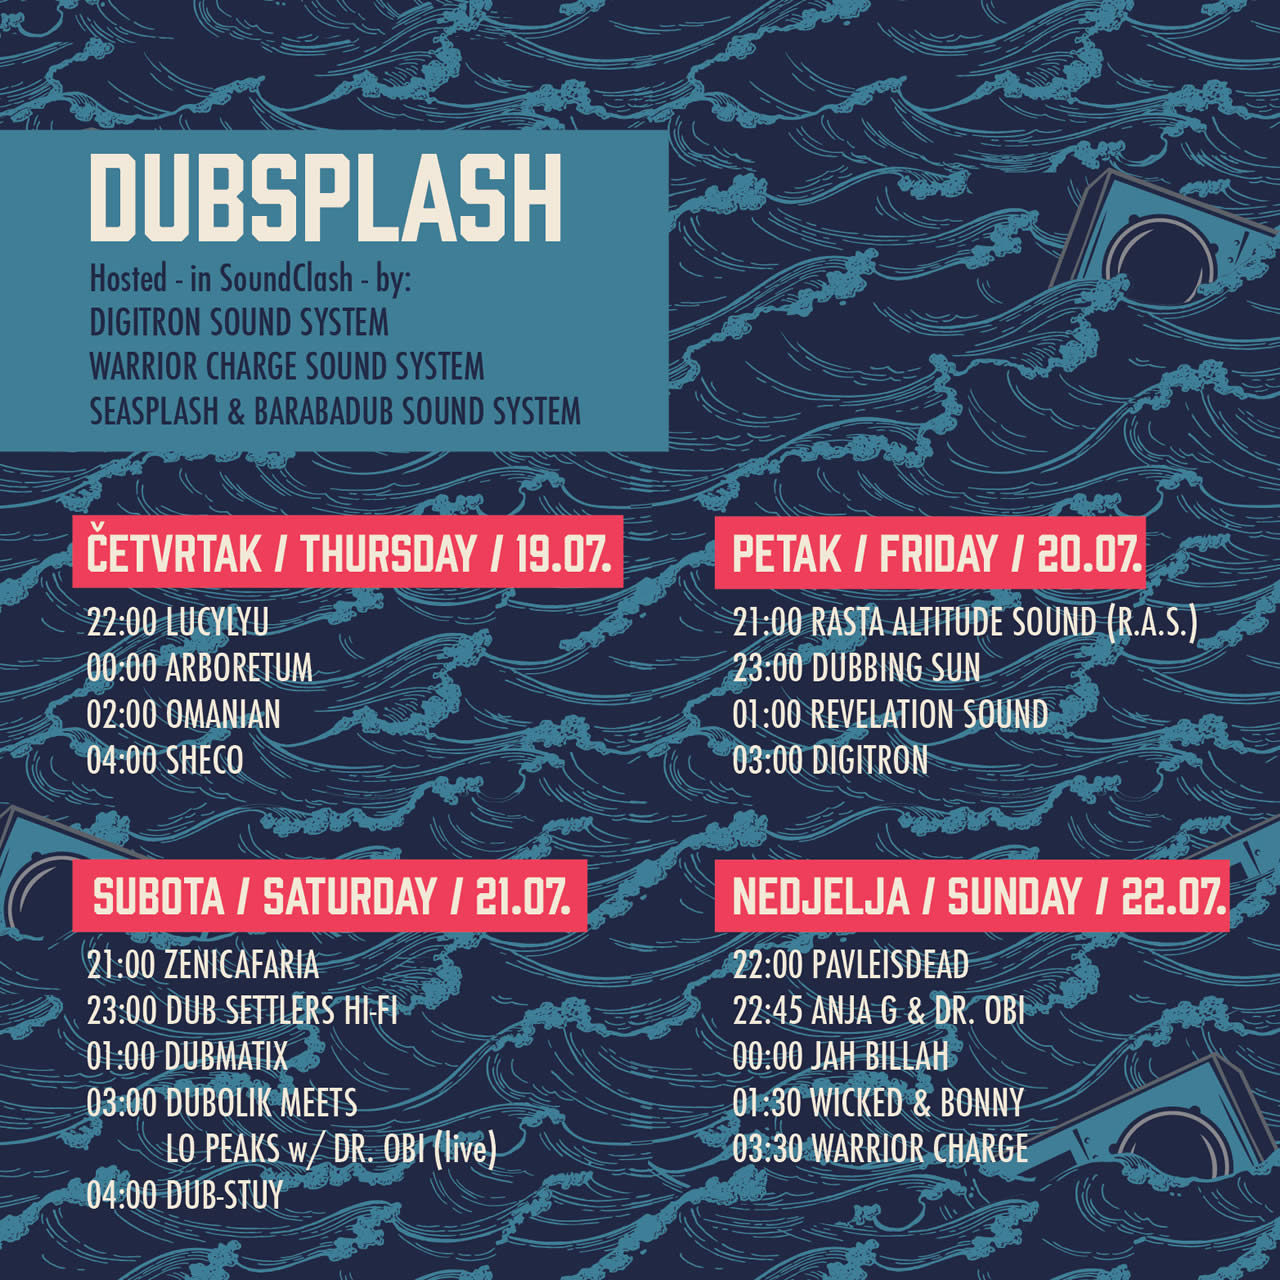 dubsplash